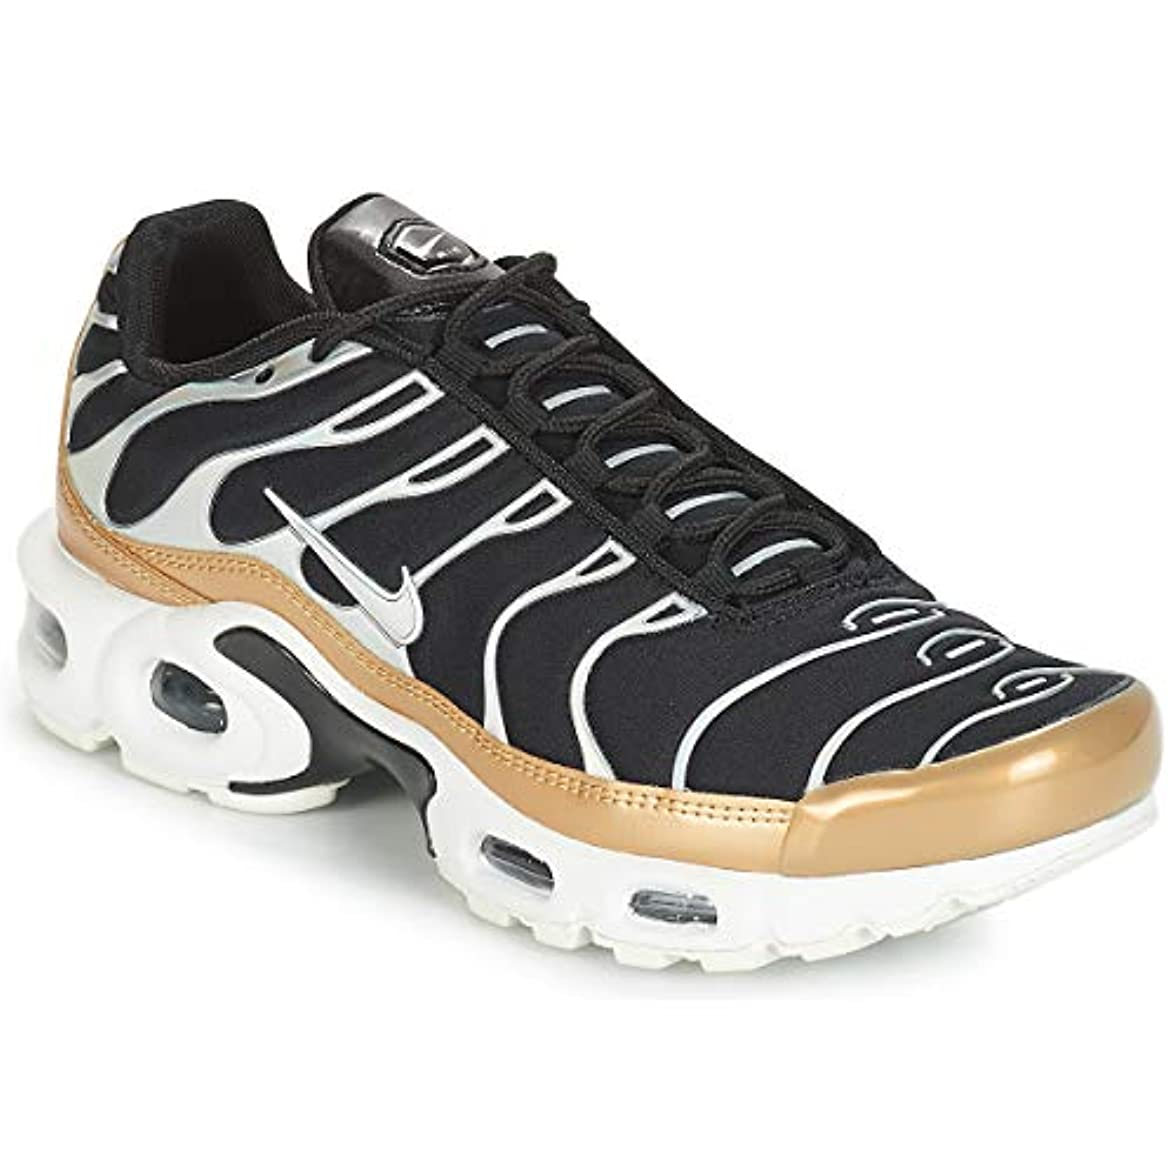 Nike Sport Scarpe Per Le Donne Color Nero Marca Modelo Donne Air Max Plus Nero